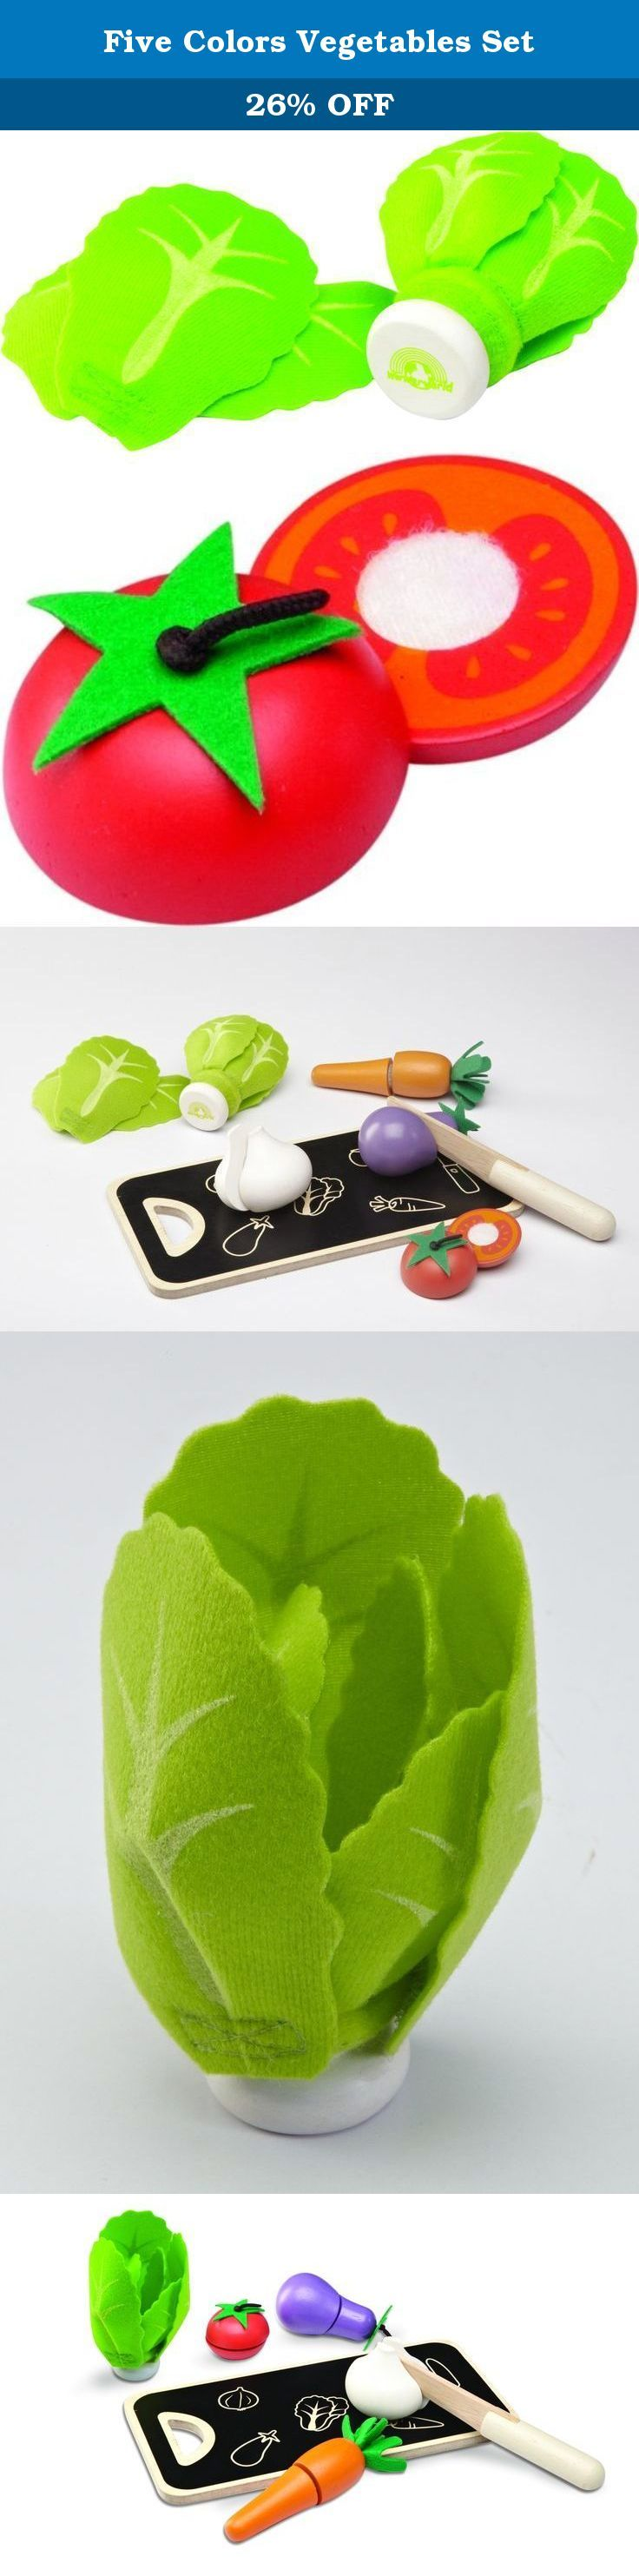 "Five Colors Vegetables Set. WW-4552 Features: -Enjoy pretend play accessory. -Combination of fabric and wood provide peeling function. -Eco-Friendly. -Environmentally friendly rubberwood and strictly using non-toxic paints, dyes and lacquers and formaldehyde free glue. Product Type: -Play food. Color: -Multi Colored. Primary Material: -Wood. Age Group: -2 Years/3 to 4 Years. Dimensions: Overall Height - Top to Bottom: -2"". Overall Width - Side to Side: -5"". Overall Depth - Front to Back:..."